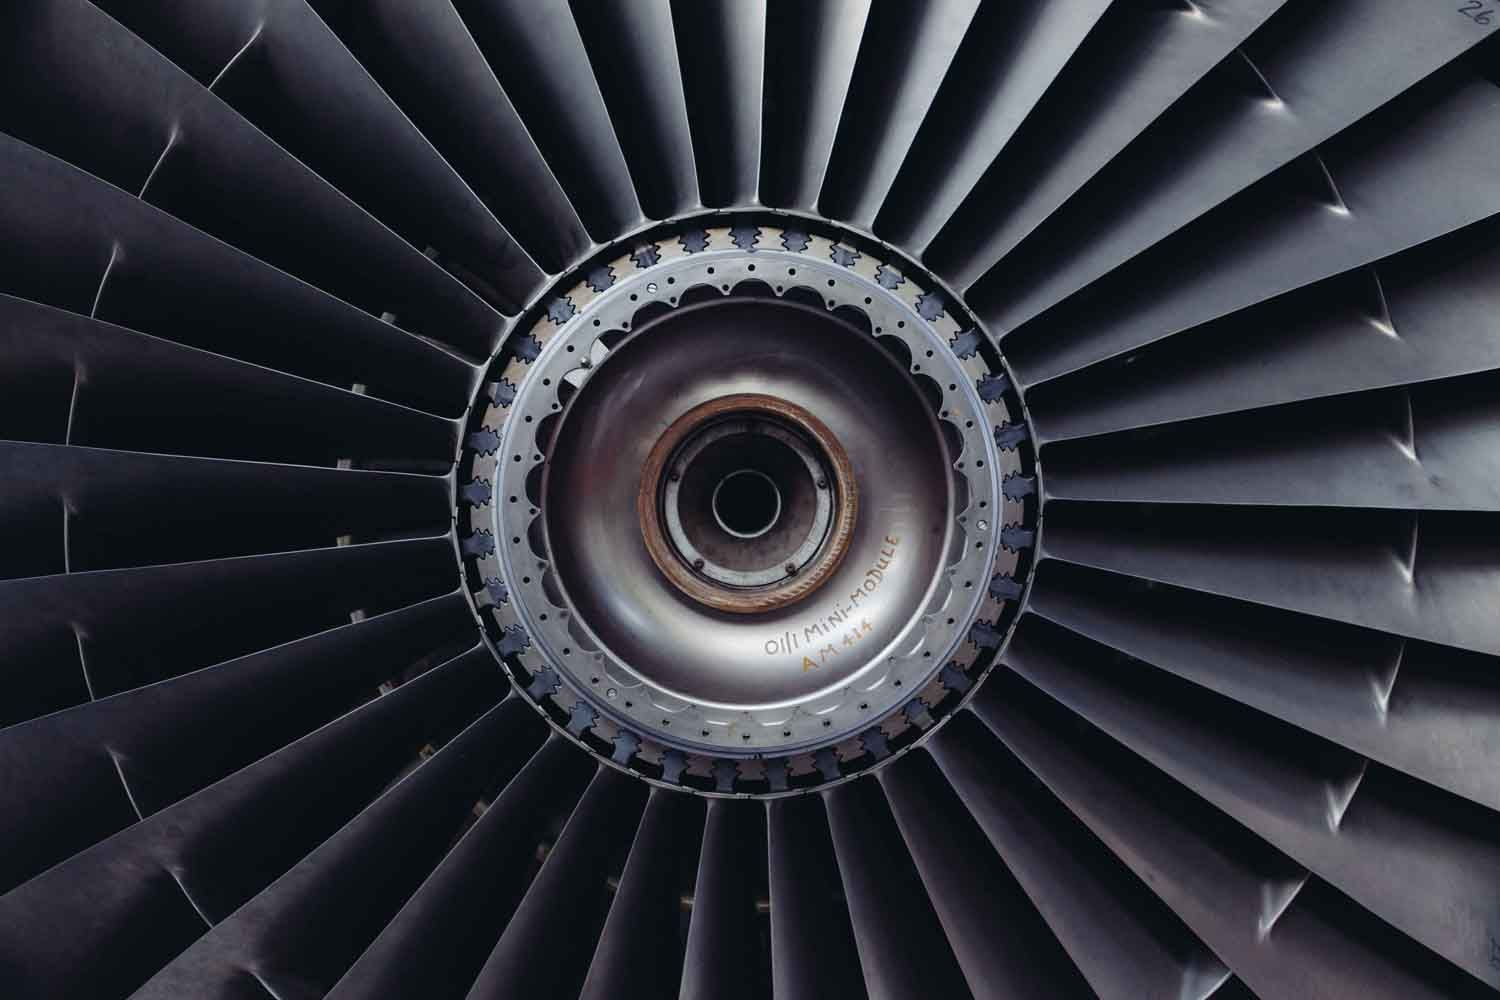 engine turbine 2.jpg